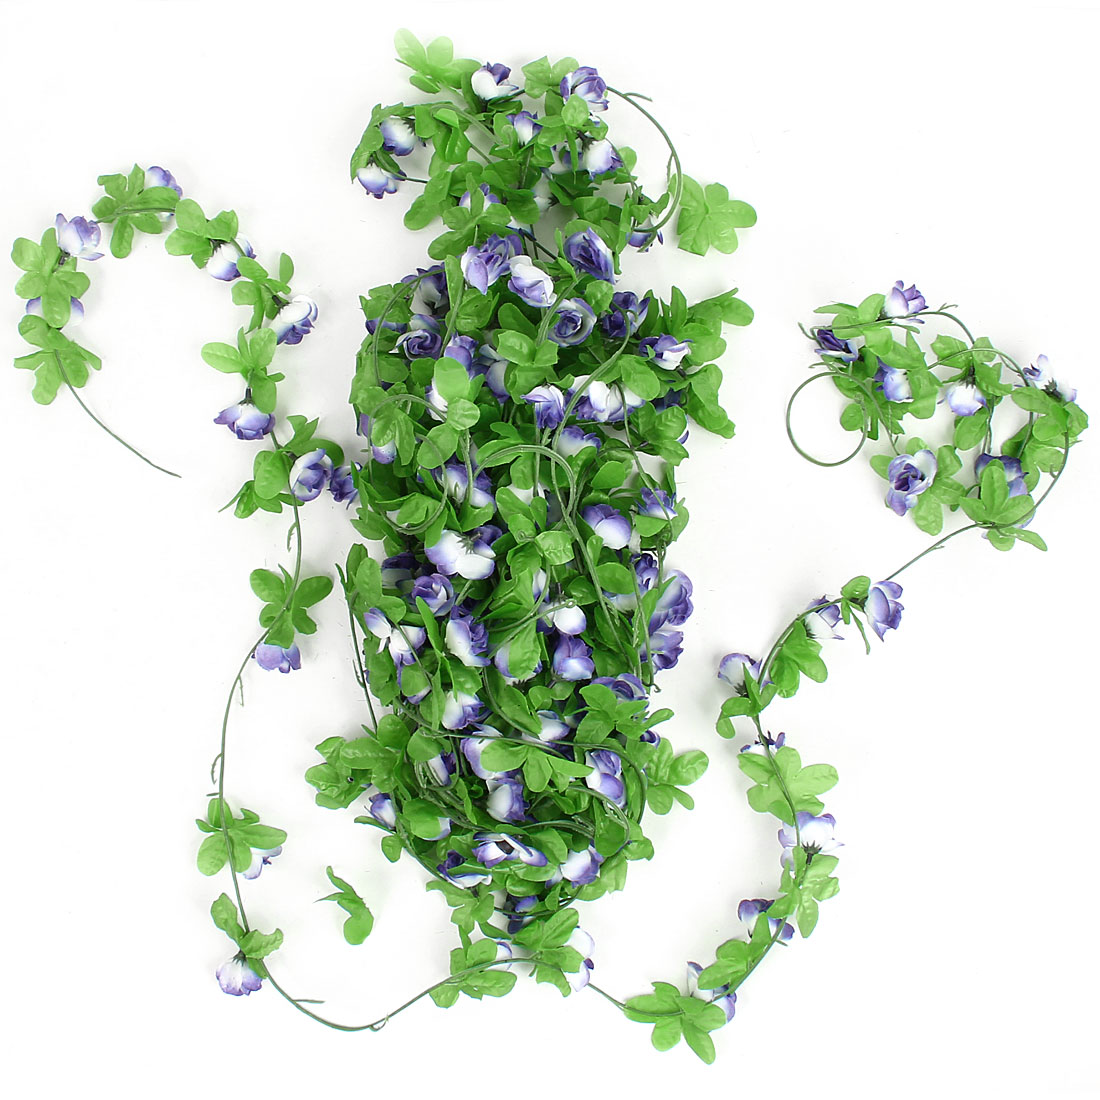 2.5M Long Green Fabric Floral Artificial Hanging Vine Wedding Home Party Ornament 5PCS